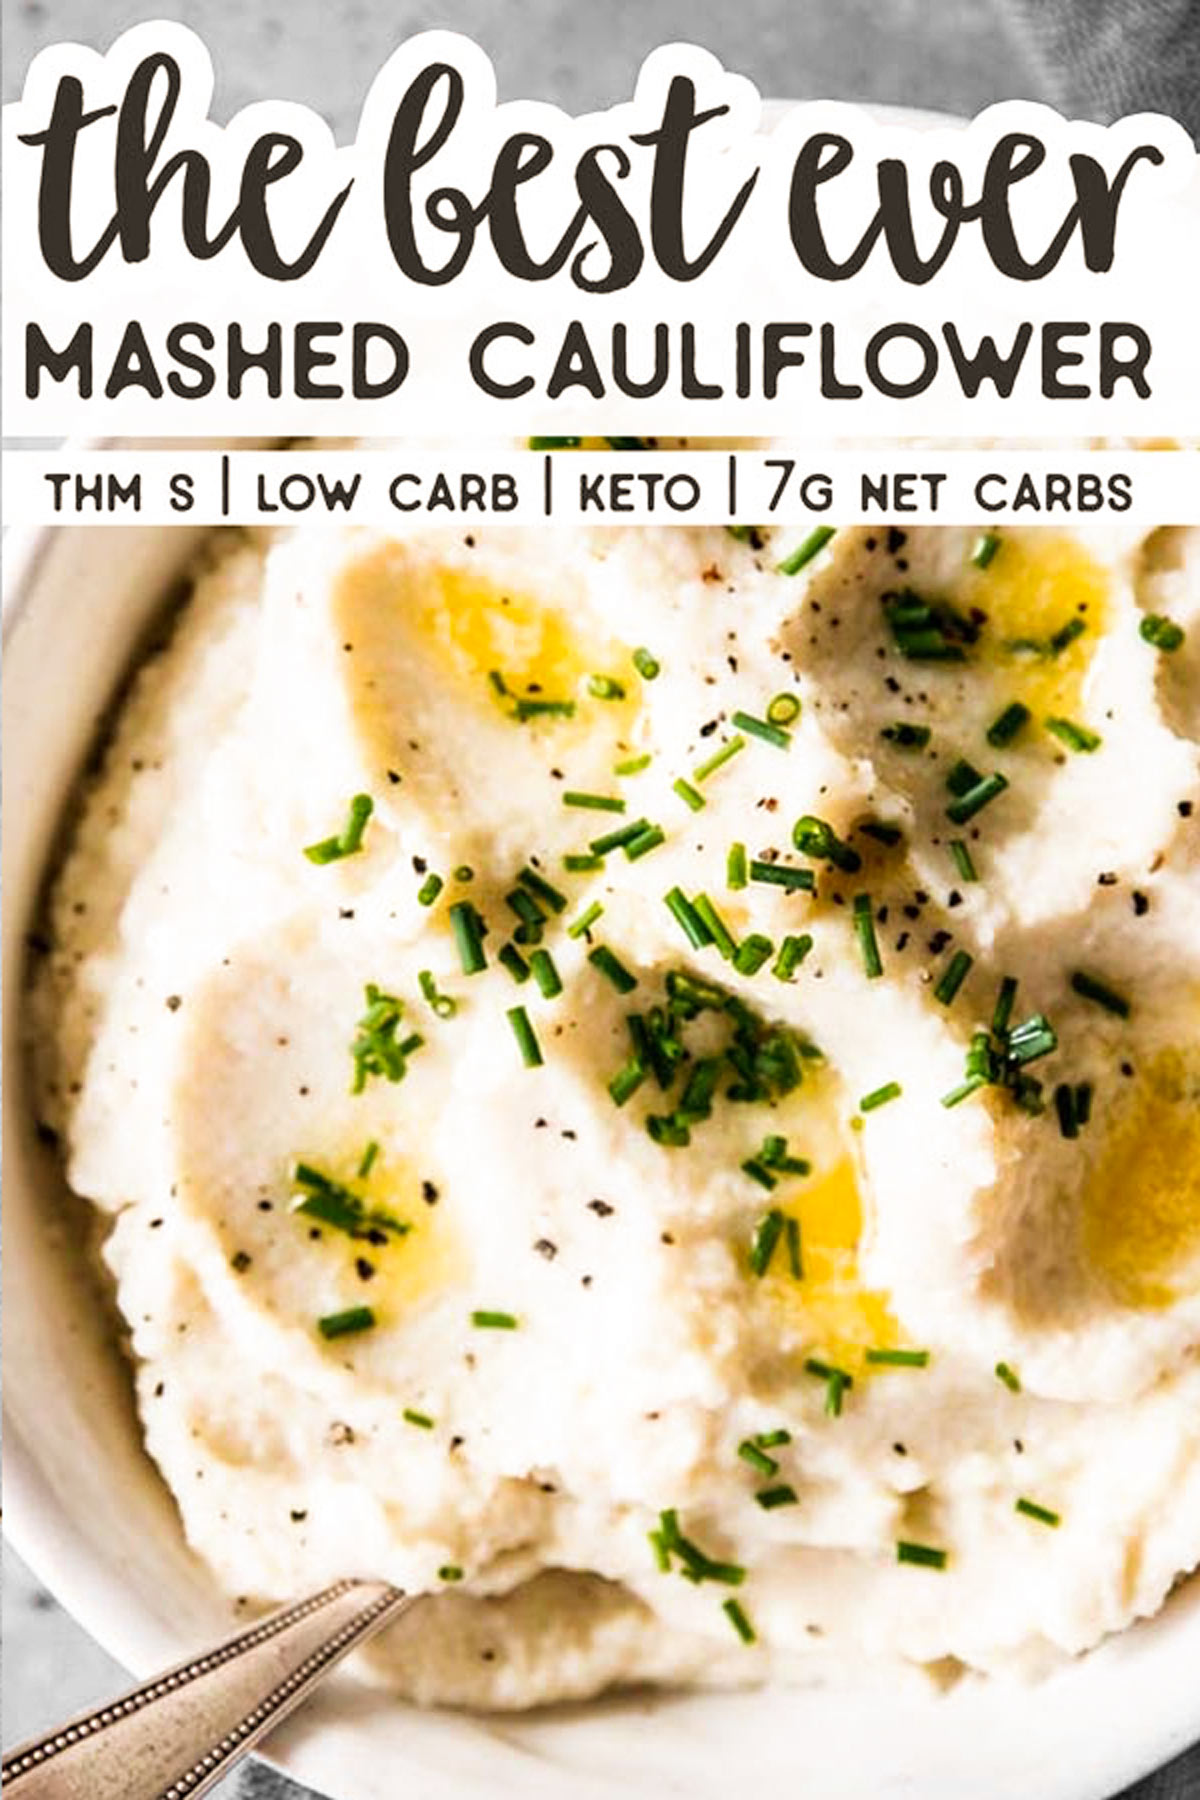 close up of mashed cauliflower with text overlay